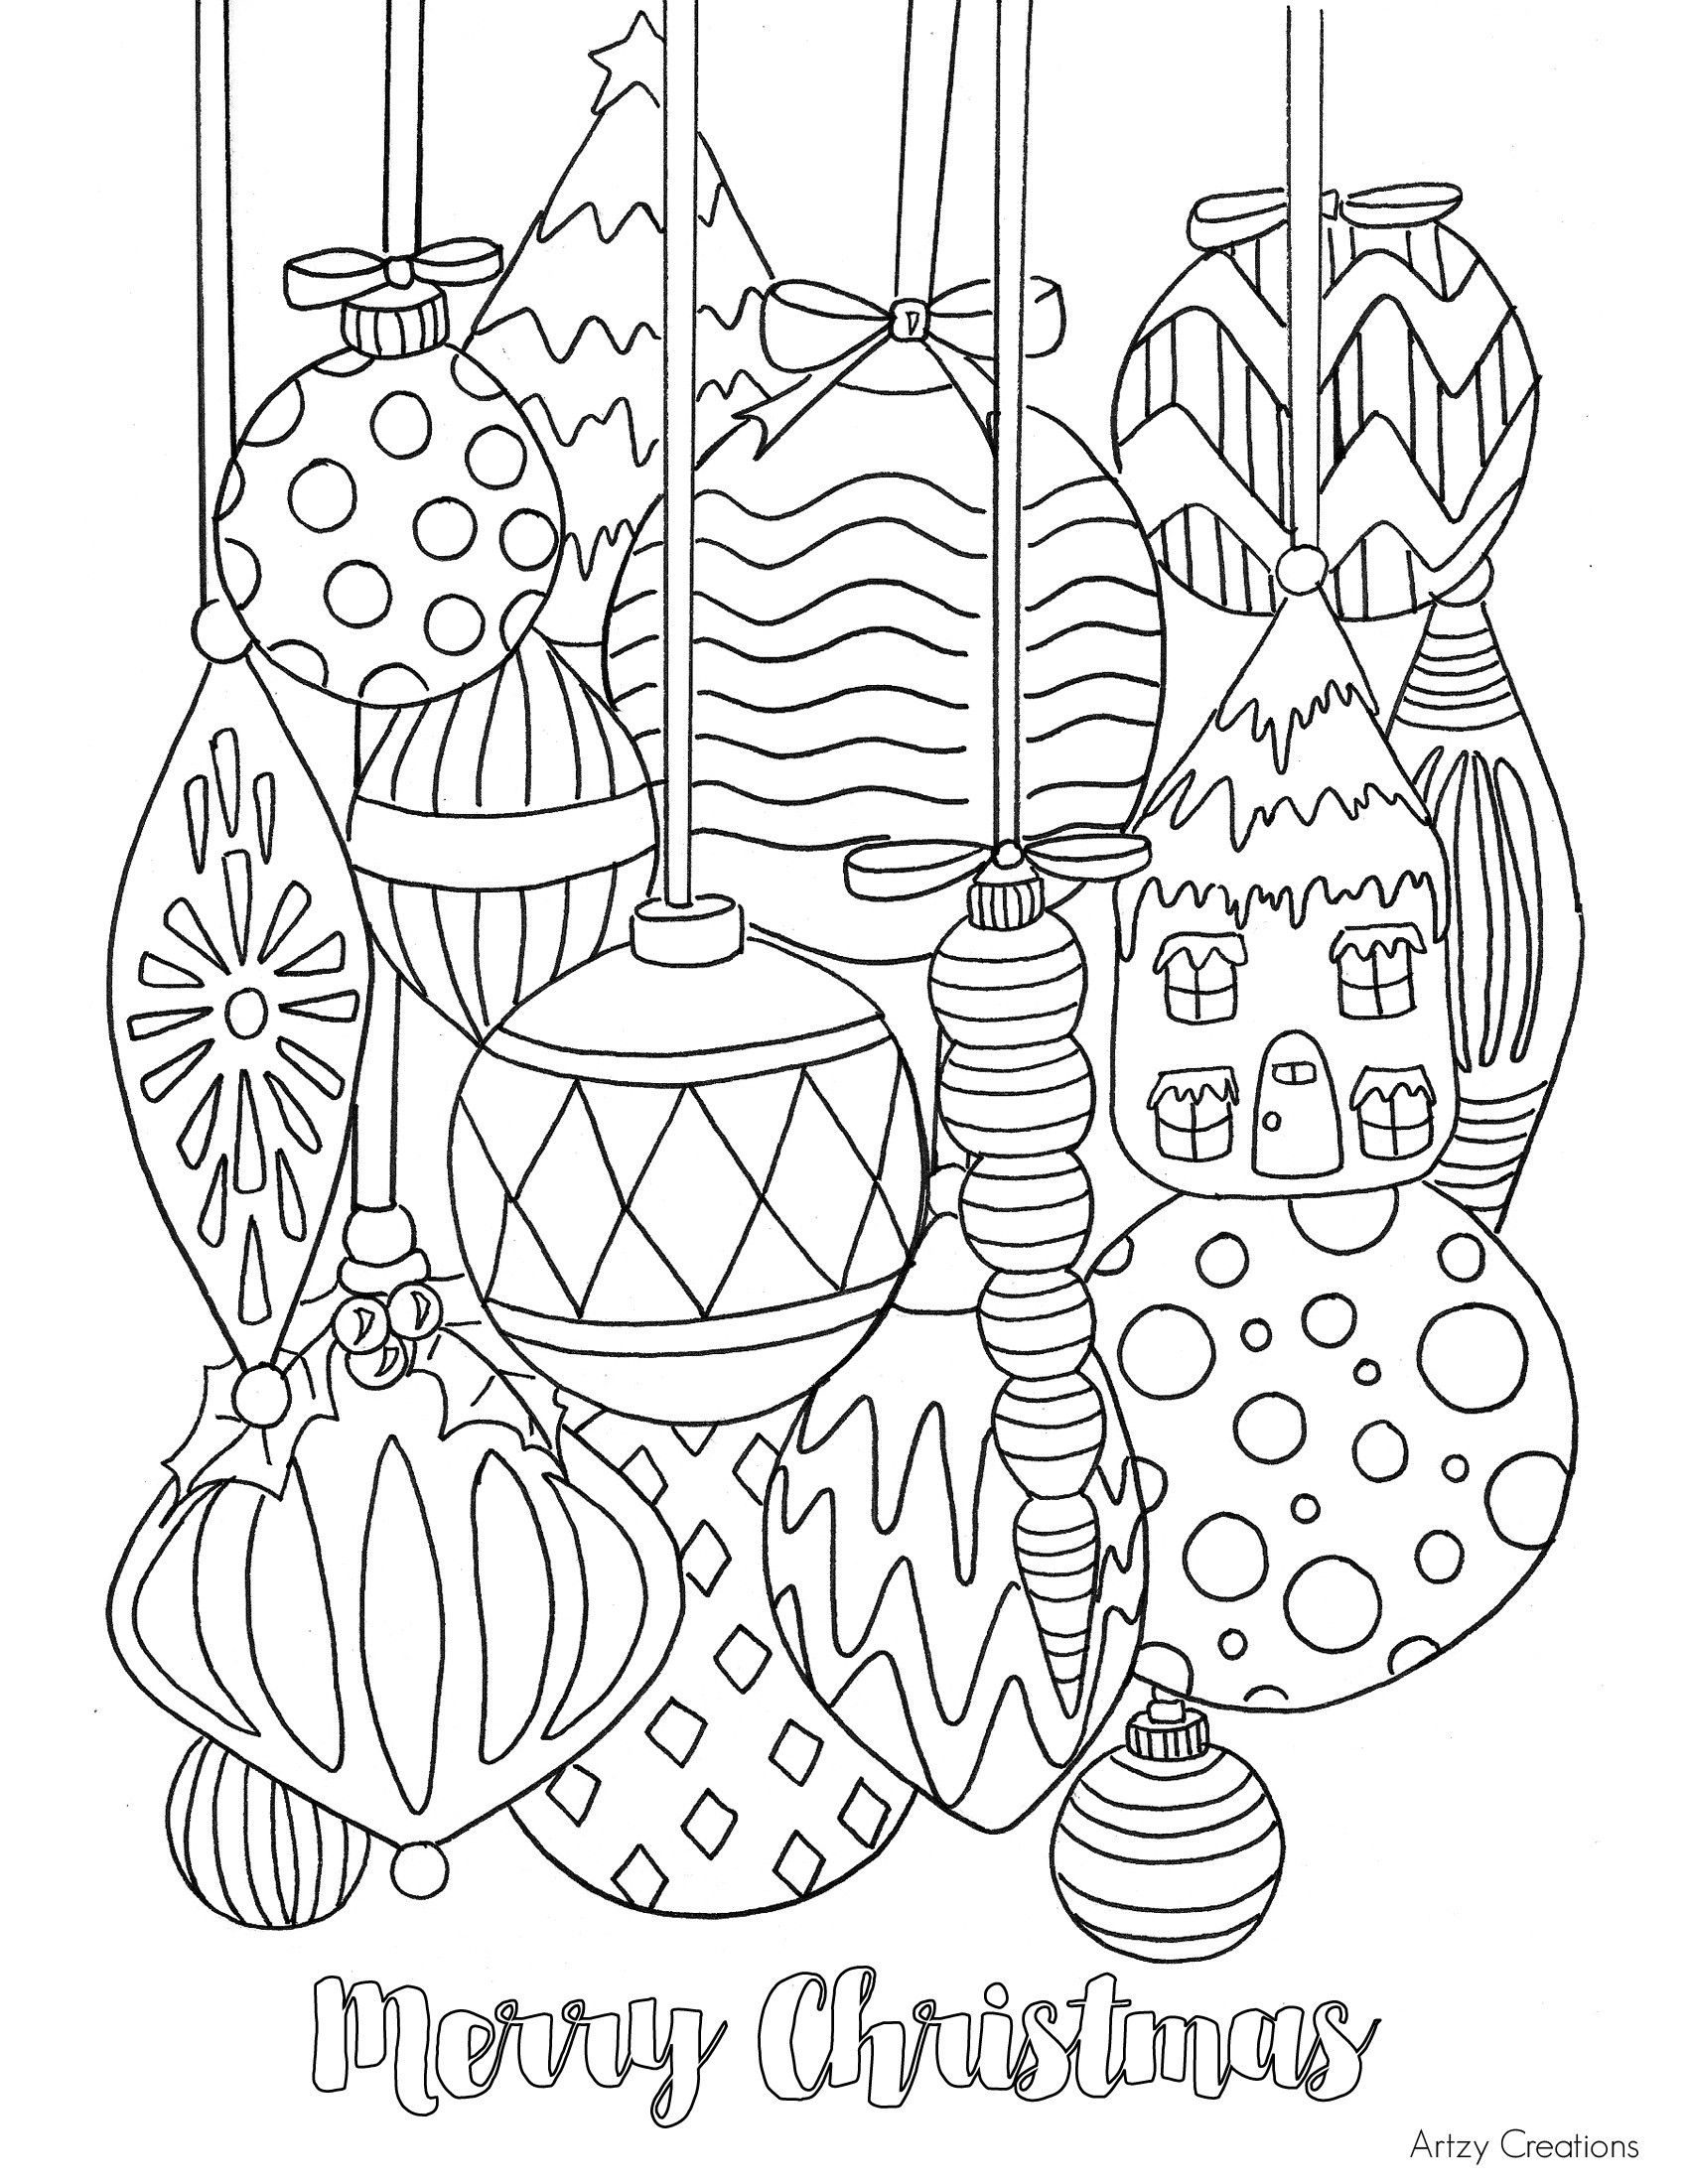 Printable Christmas Coloring Pages For Adults Christmas